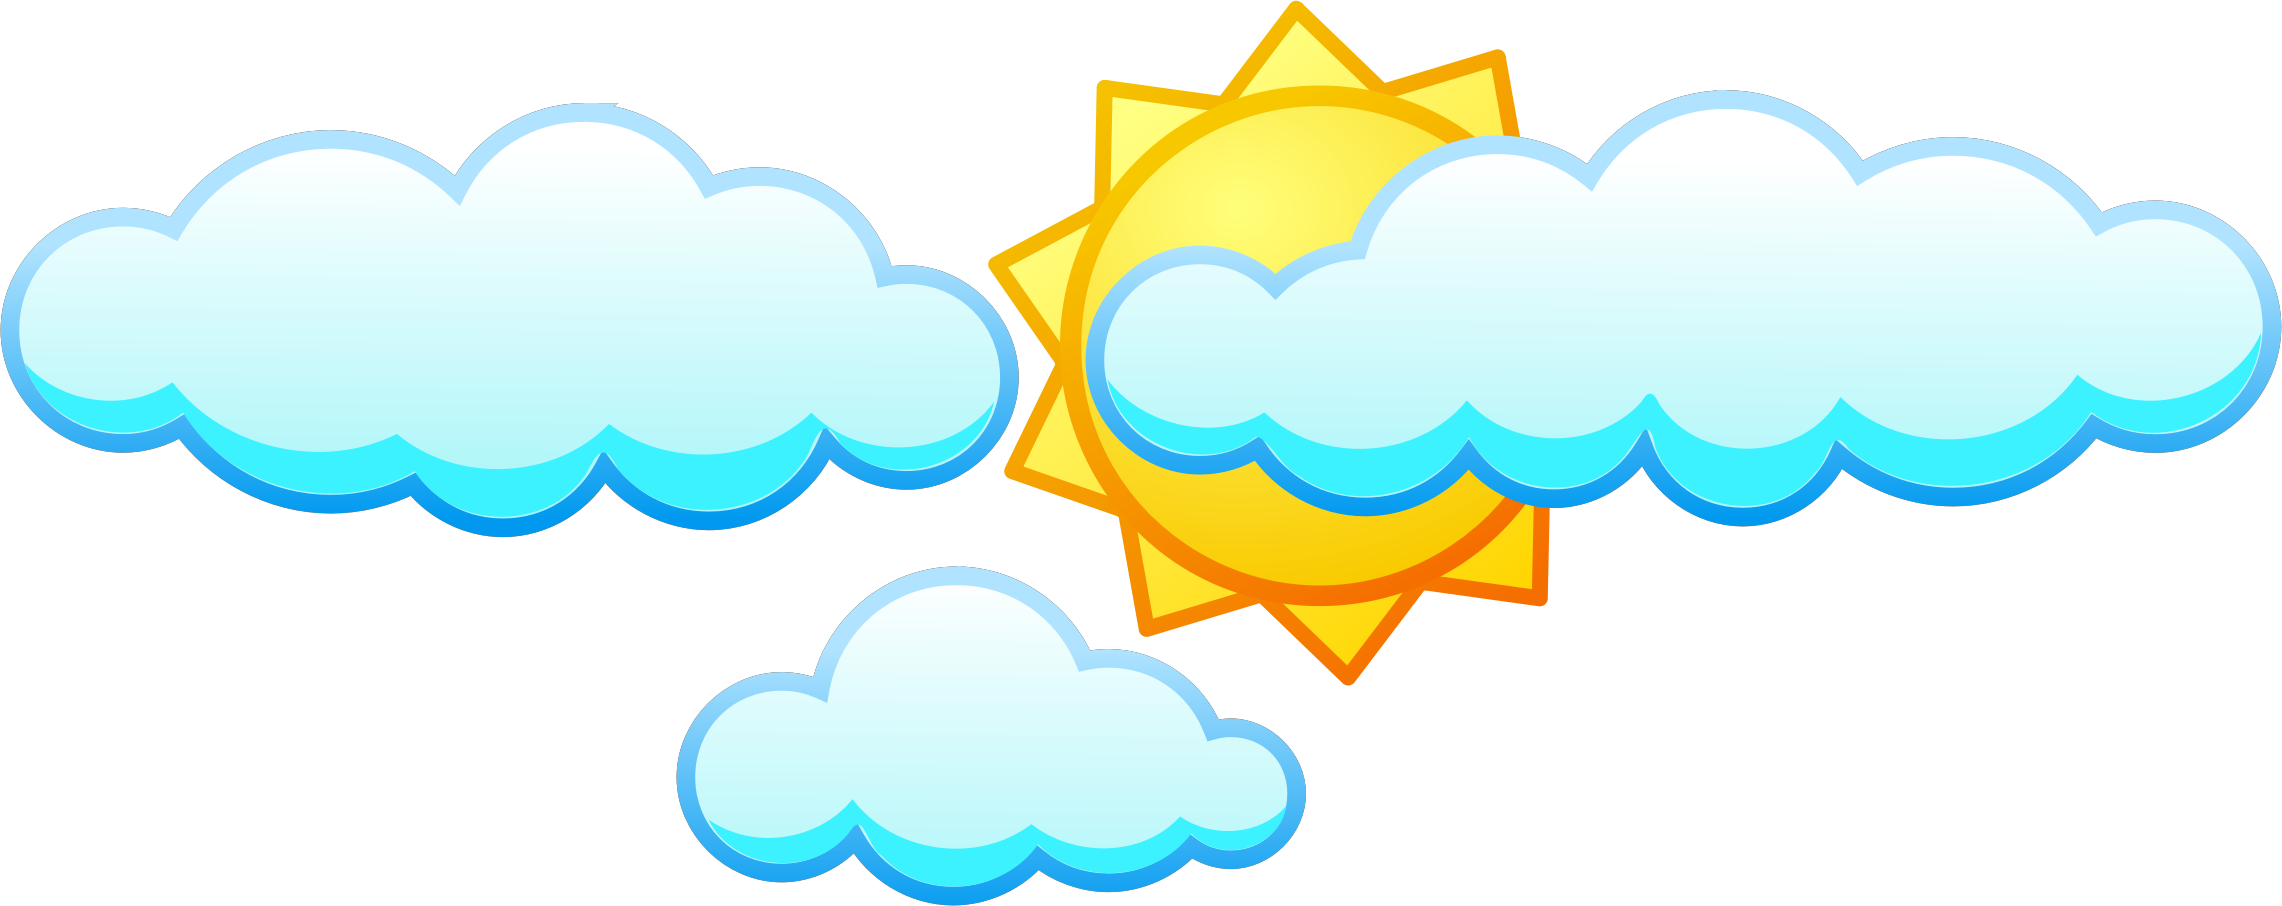 Clouds covering the sun clipart vector black and white download Sun Cloud Clipart | Free download best Sun Cloud Clipart on ... vector black and white download